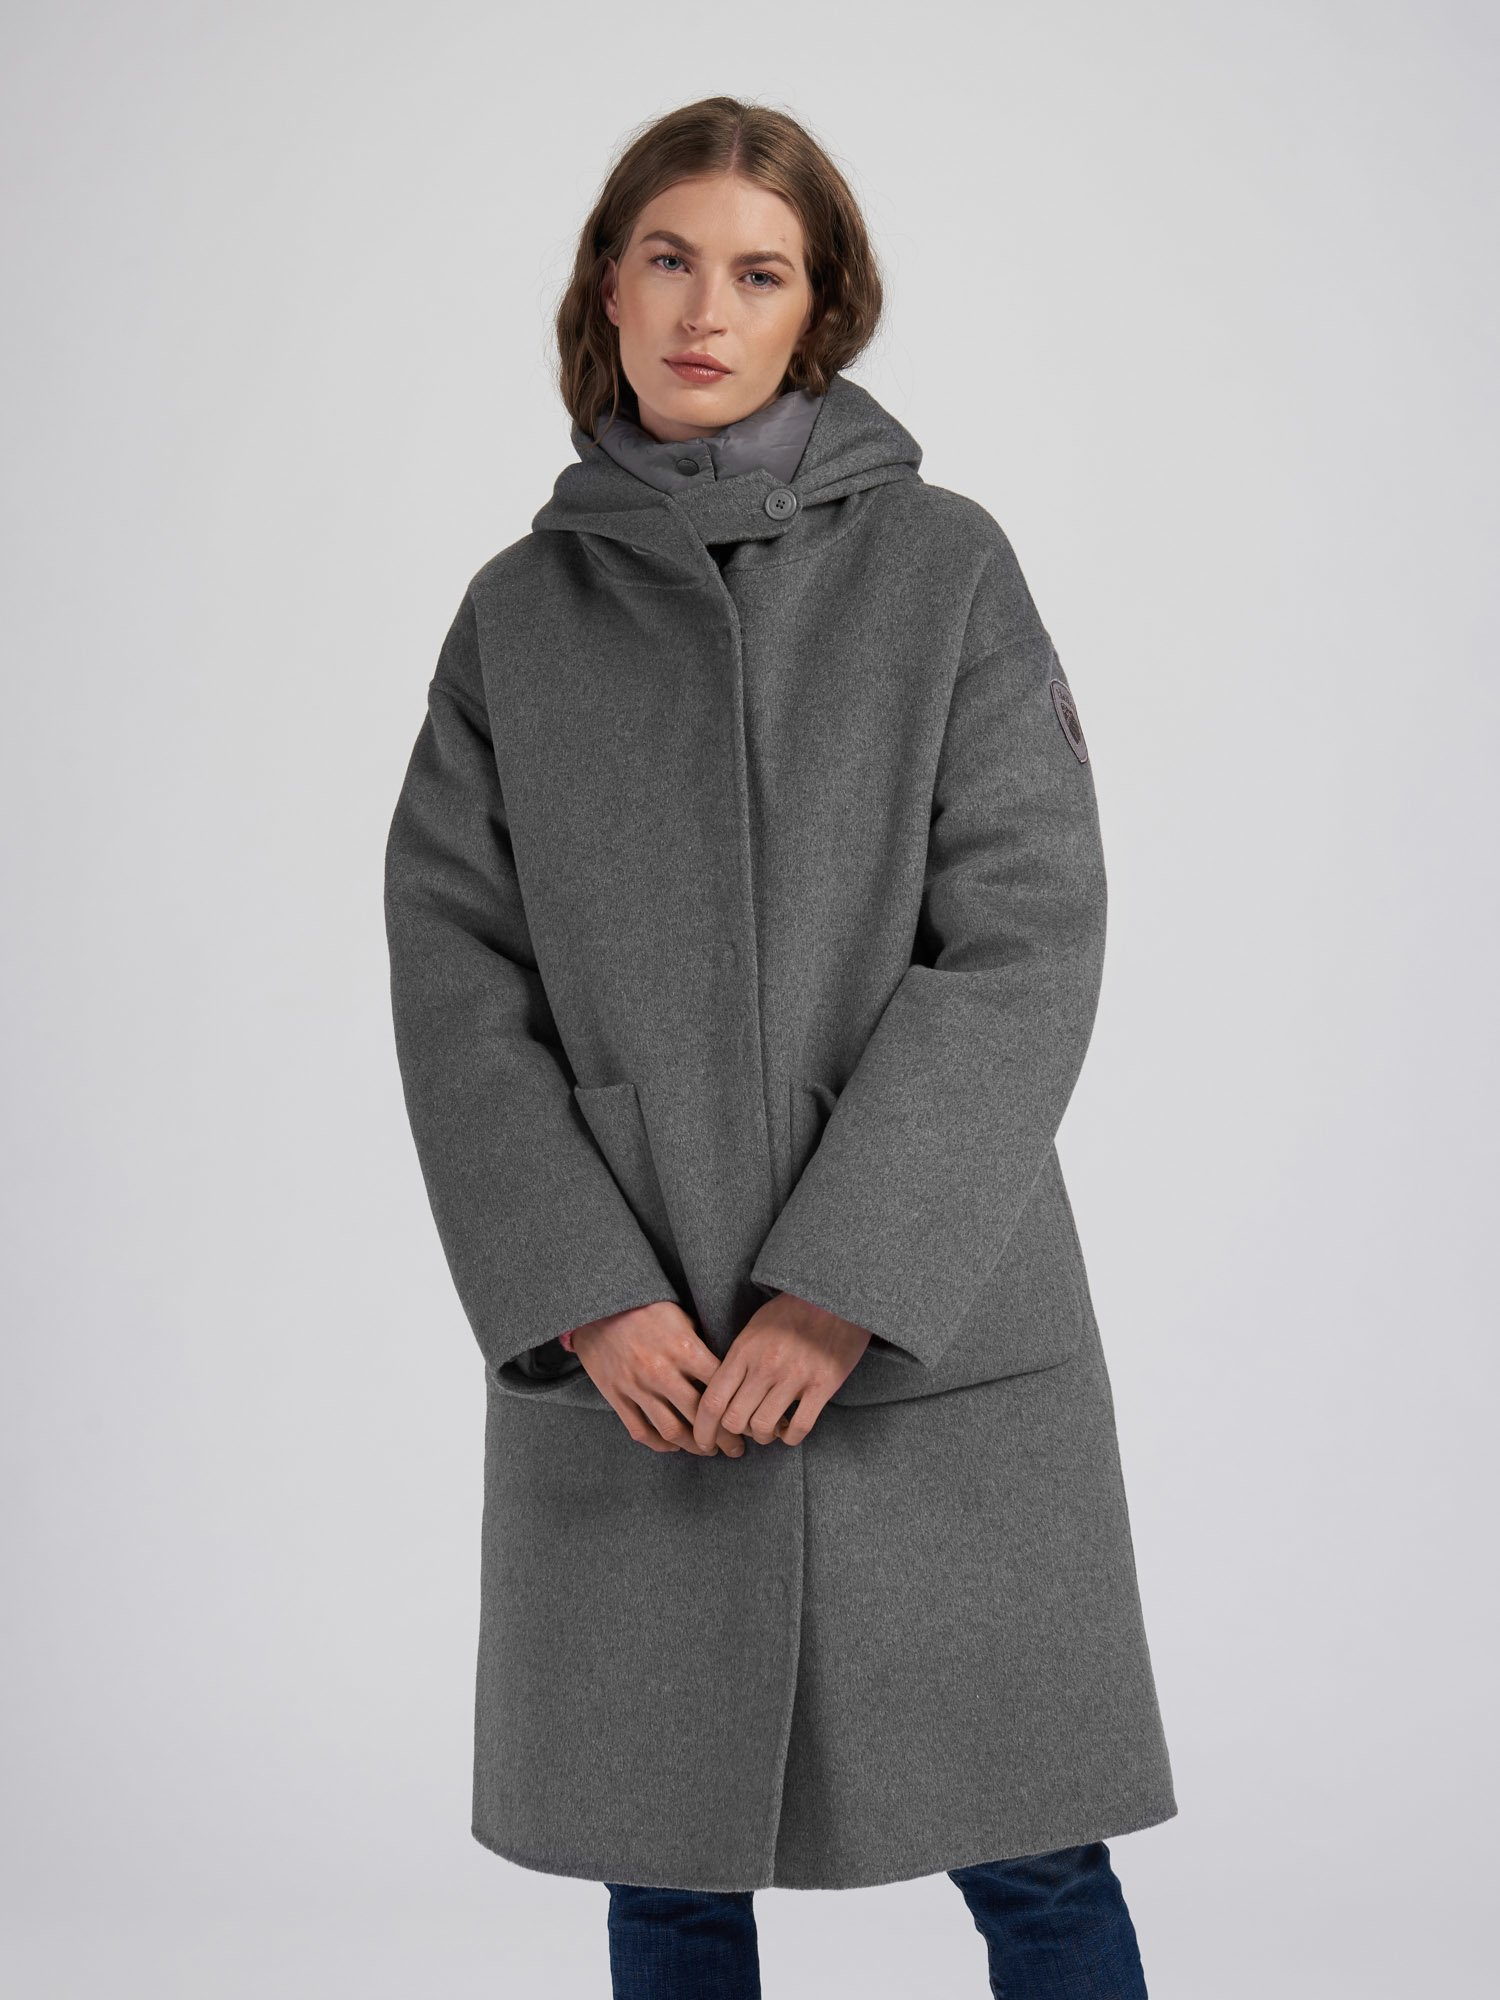 NICOLE COAT WITH HOOD - Blauer